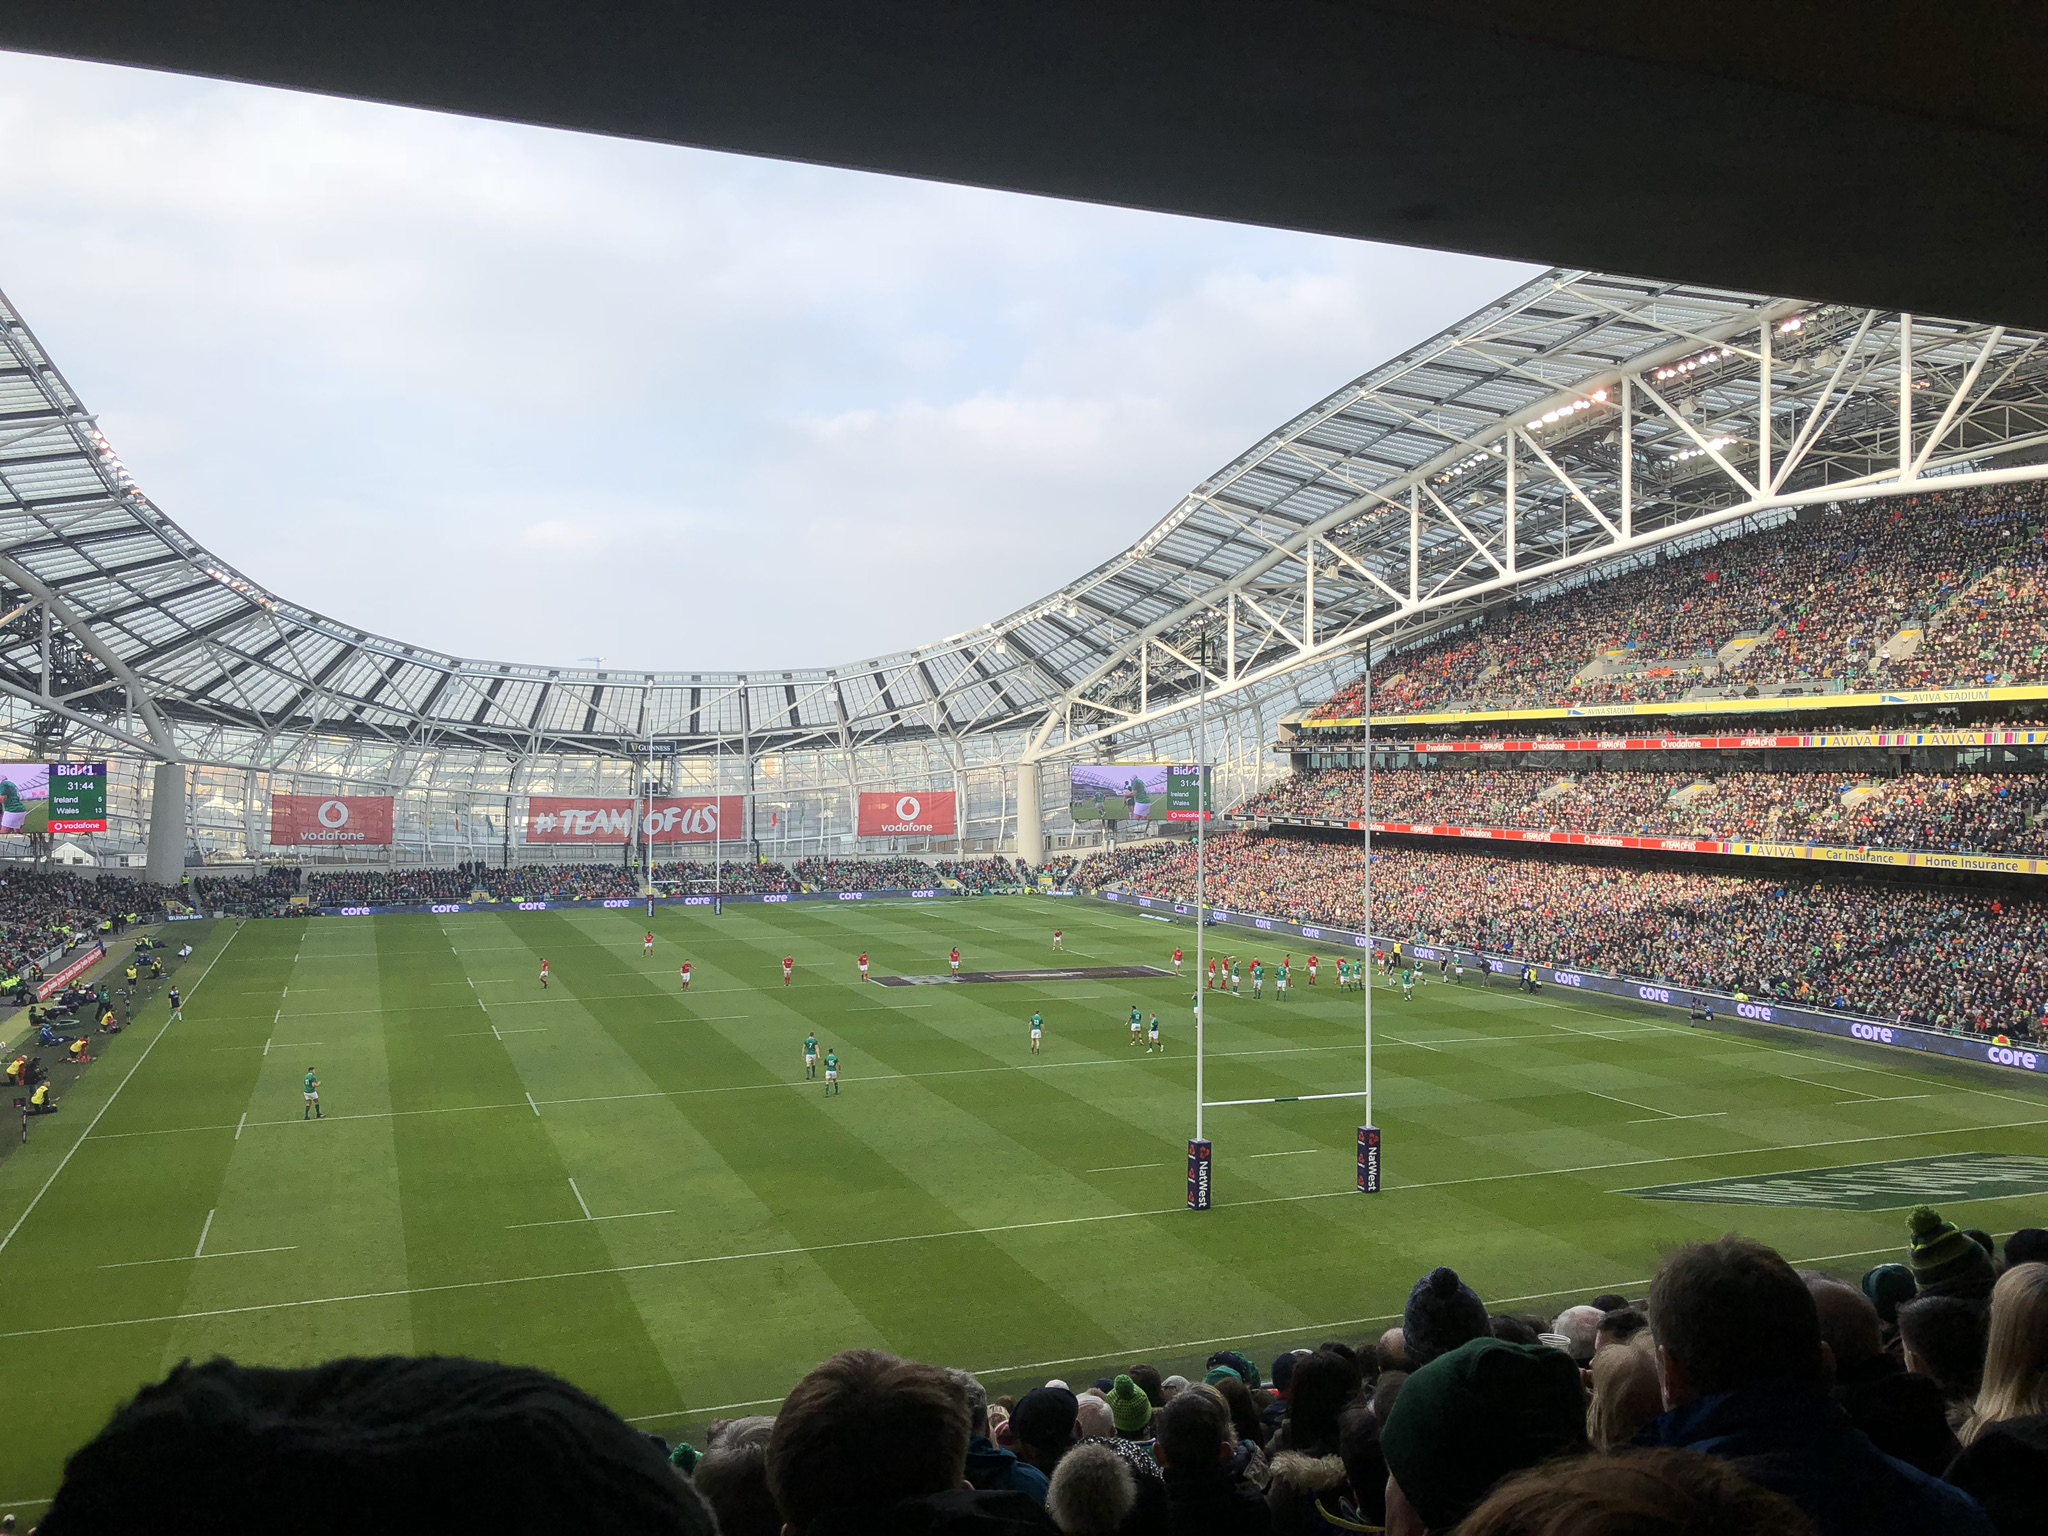 Ireland v Wales was an extraordinarily exciting game of rugby